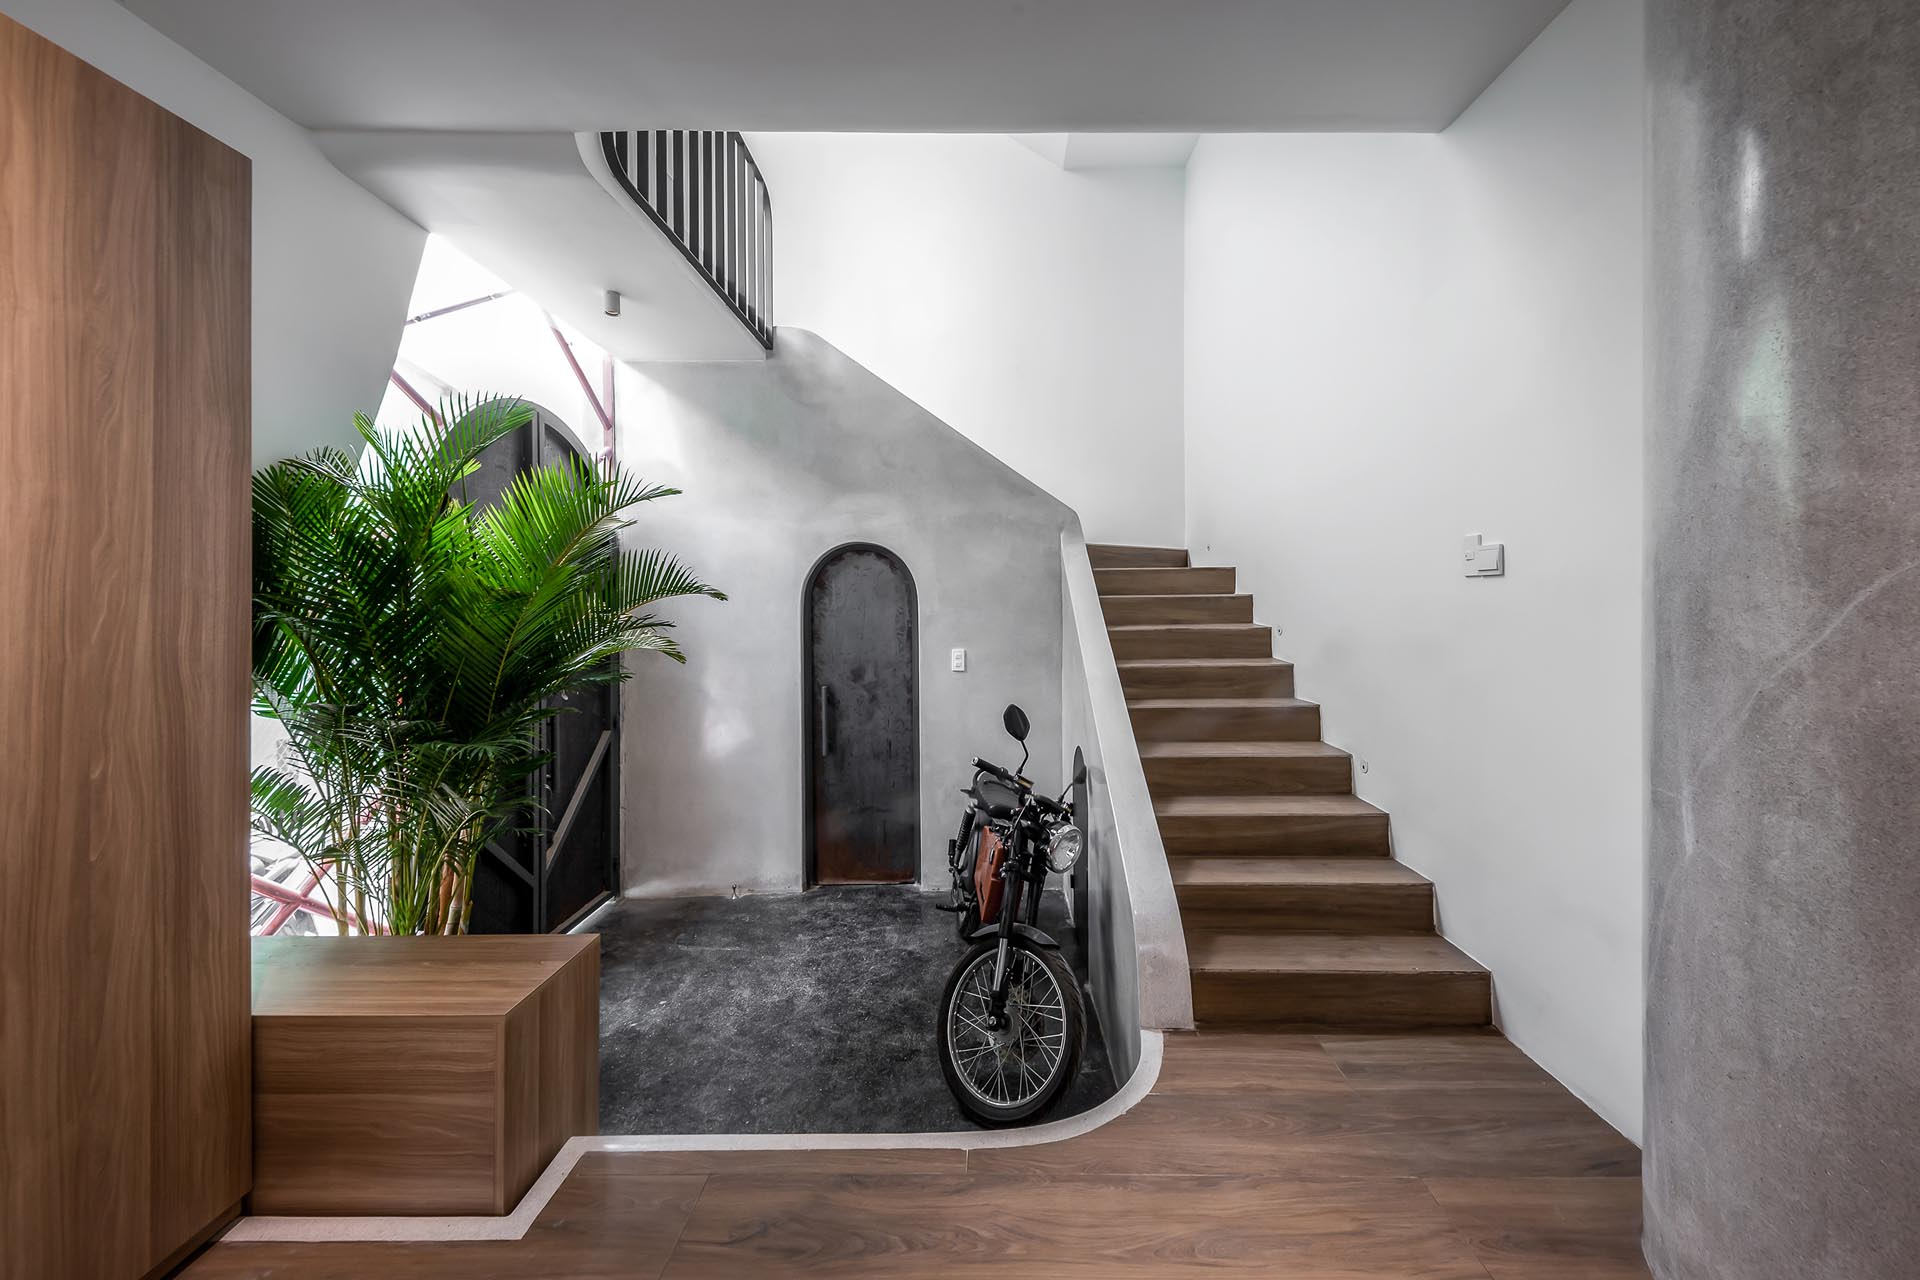 A modern home with a slightly stepped down entryway next to the stairs.